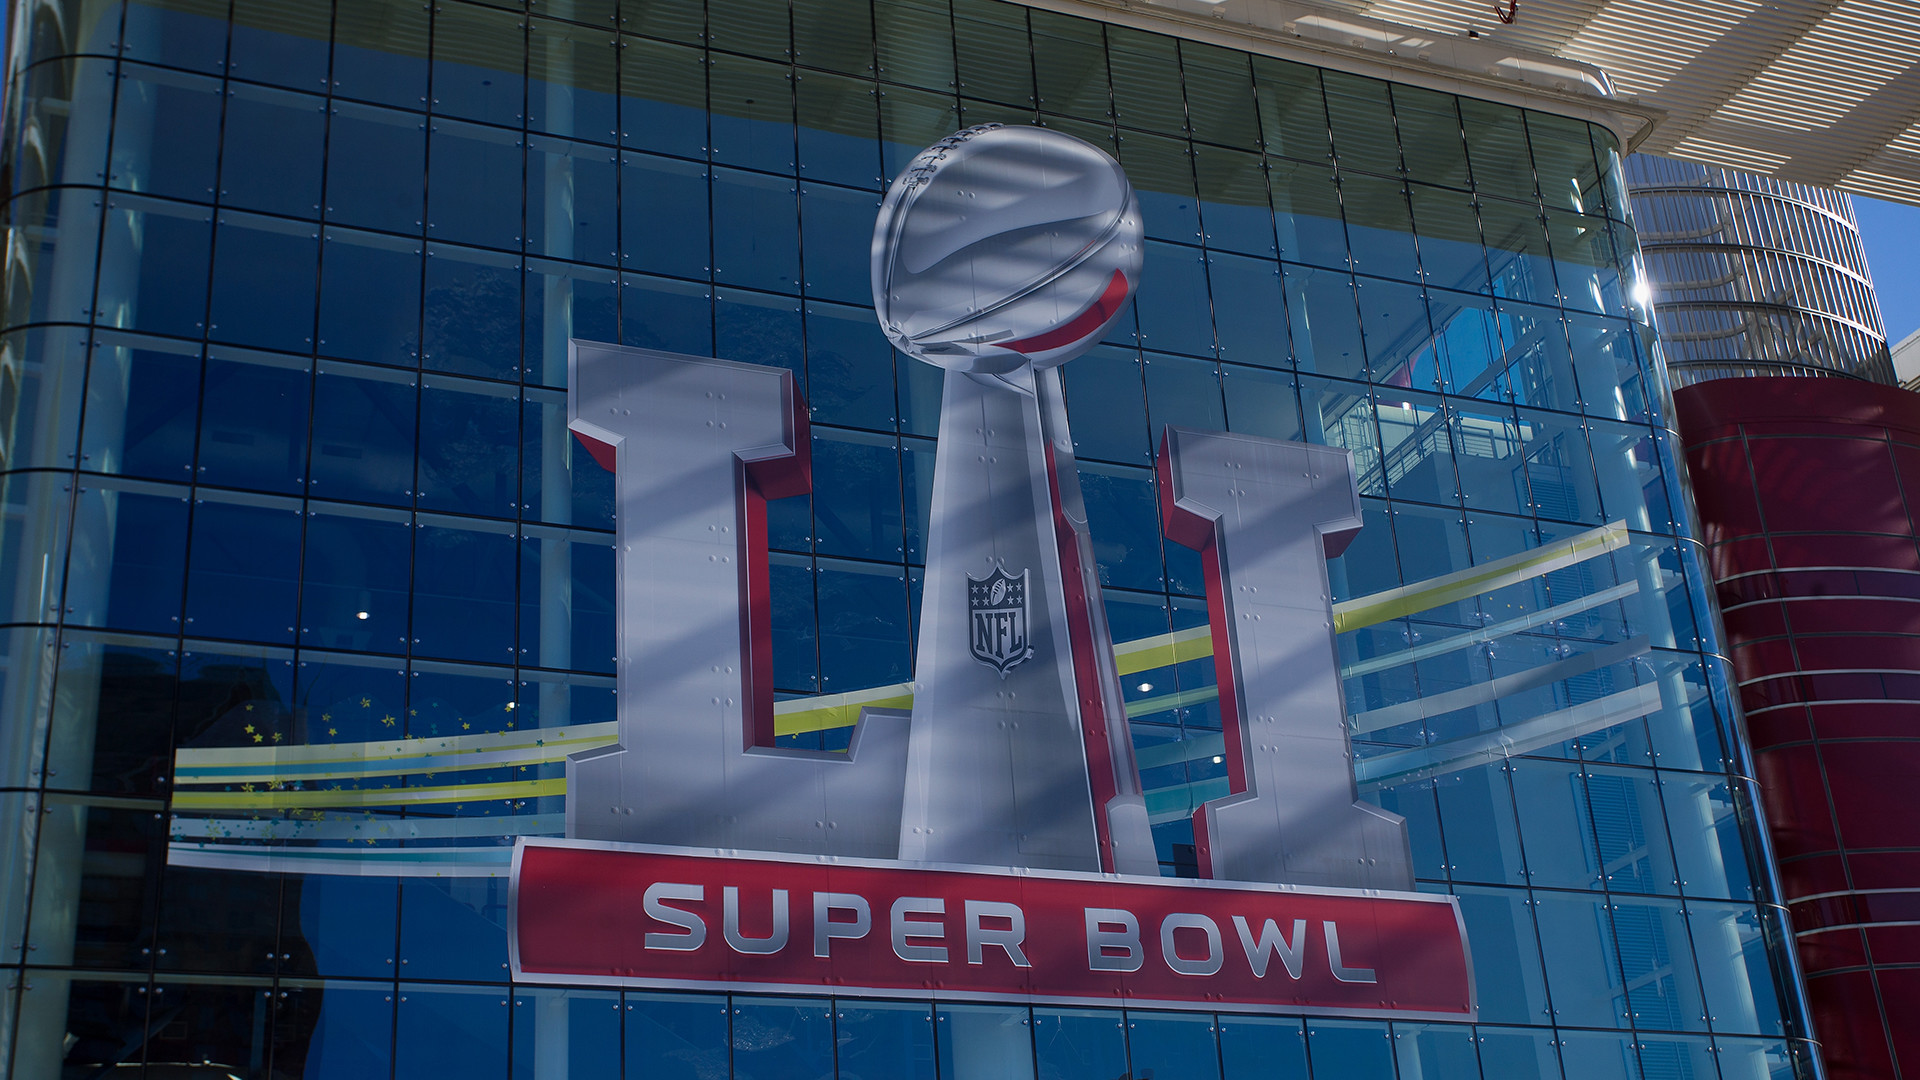 Ever Wonder  Why do Roman numerals number the Super Bowl   6d6351fdb